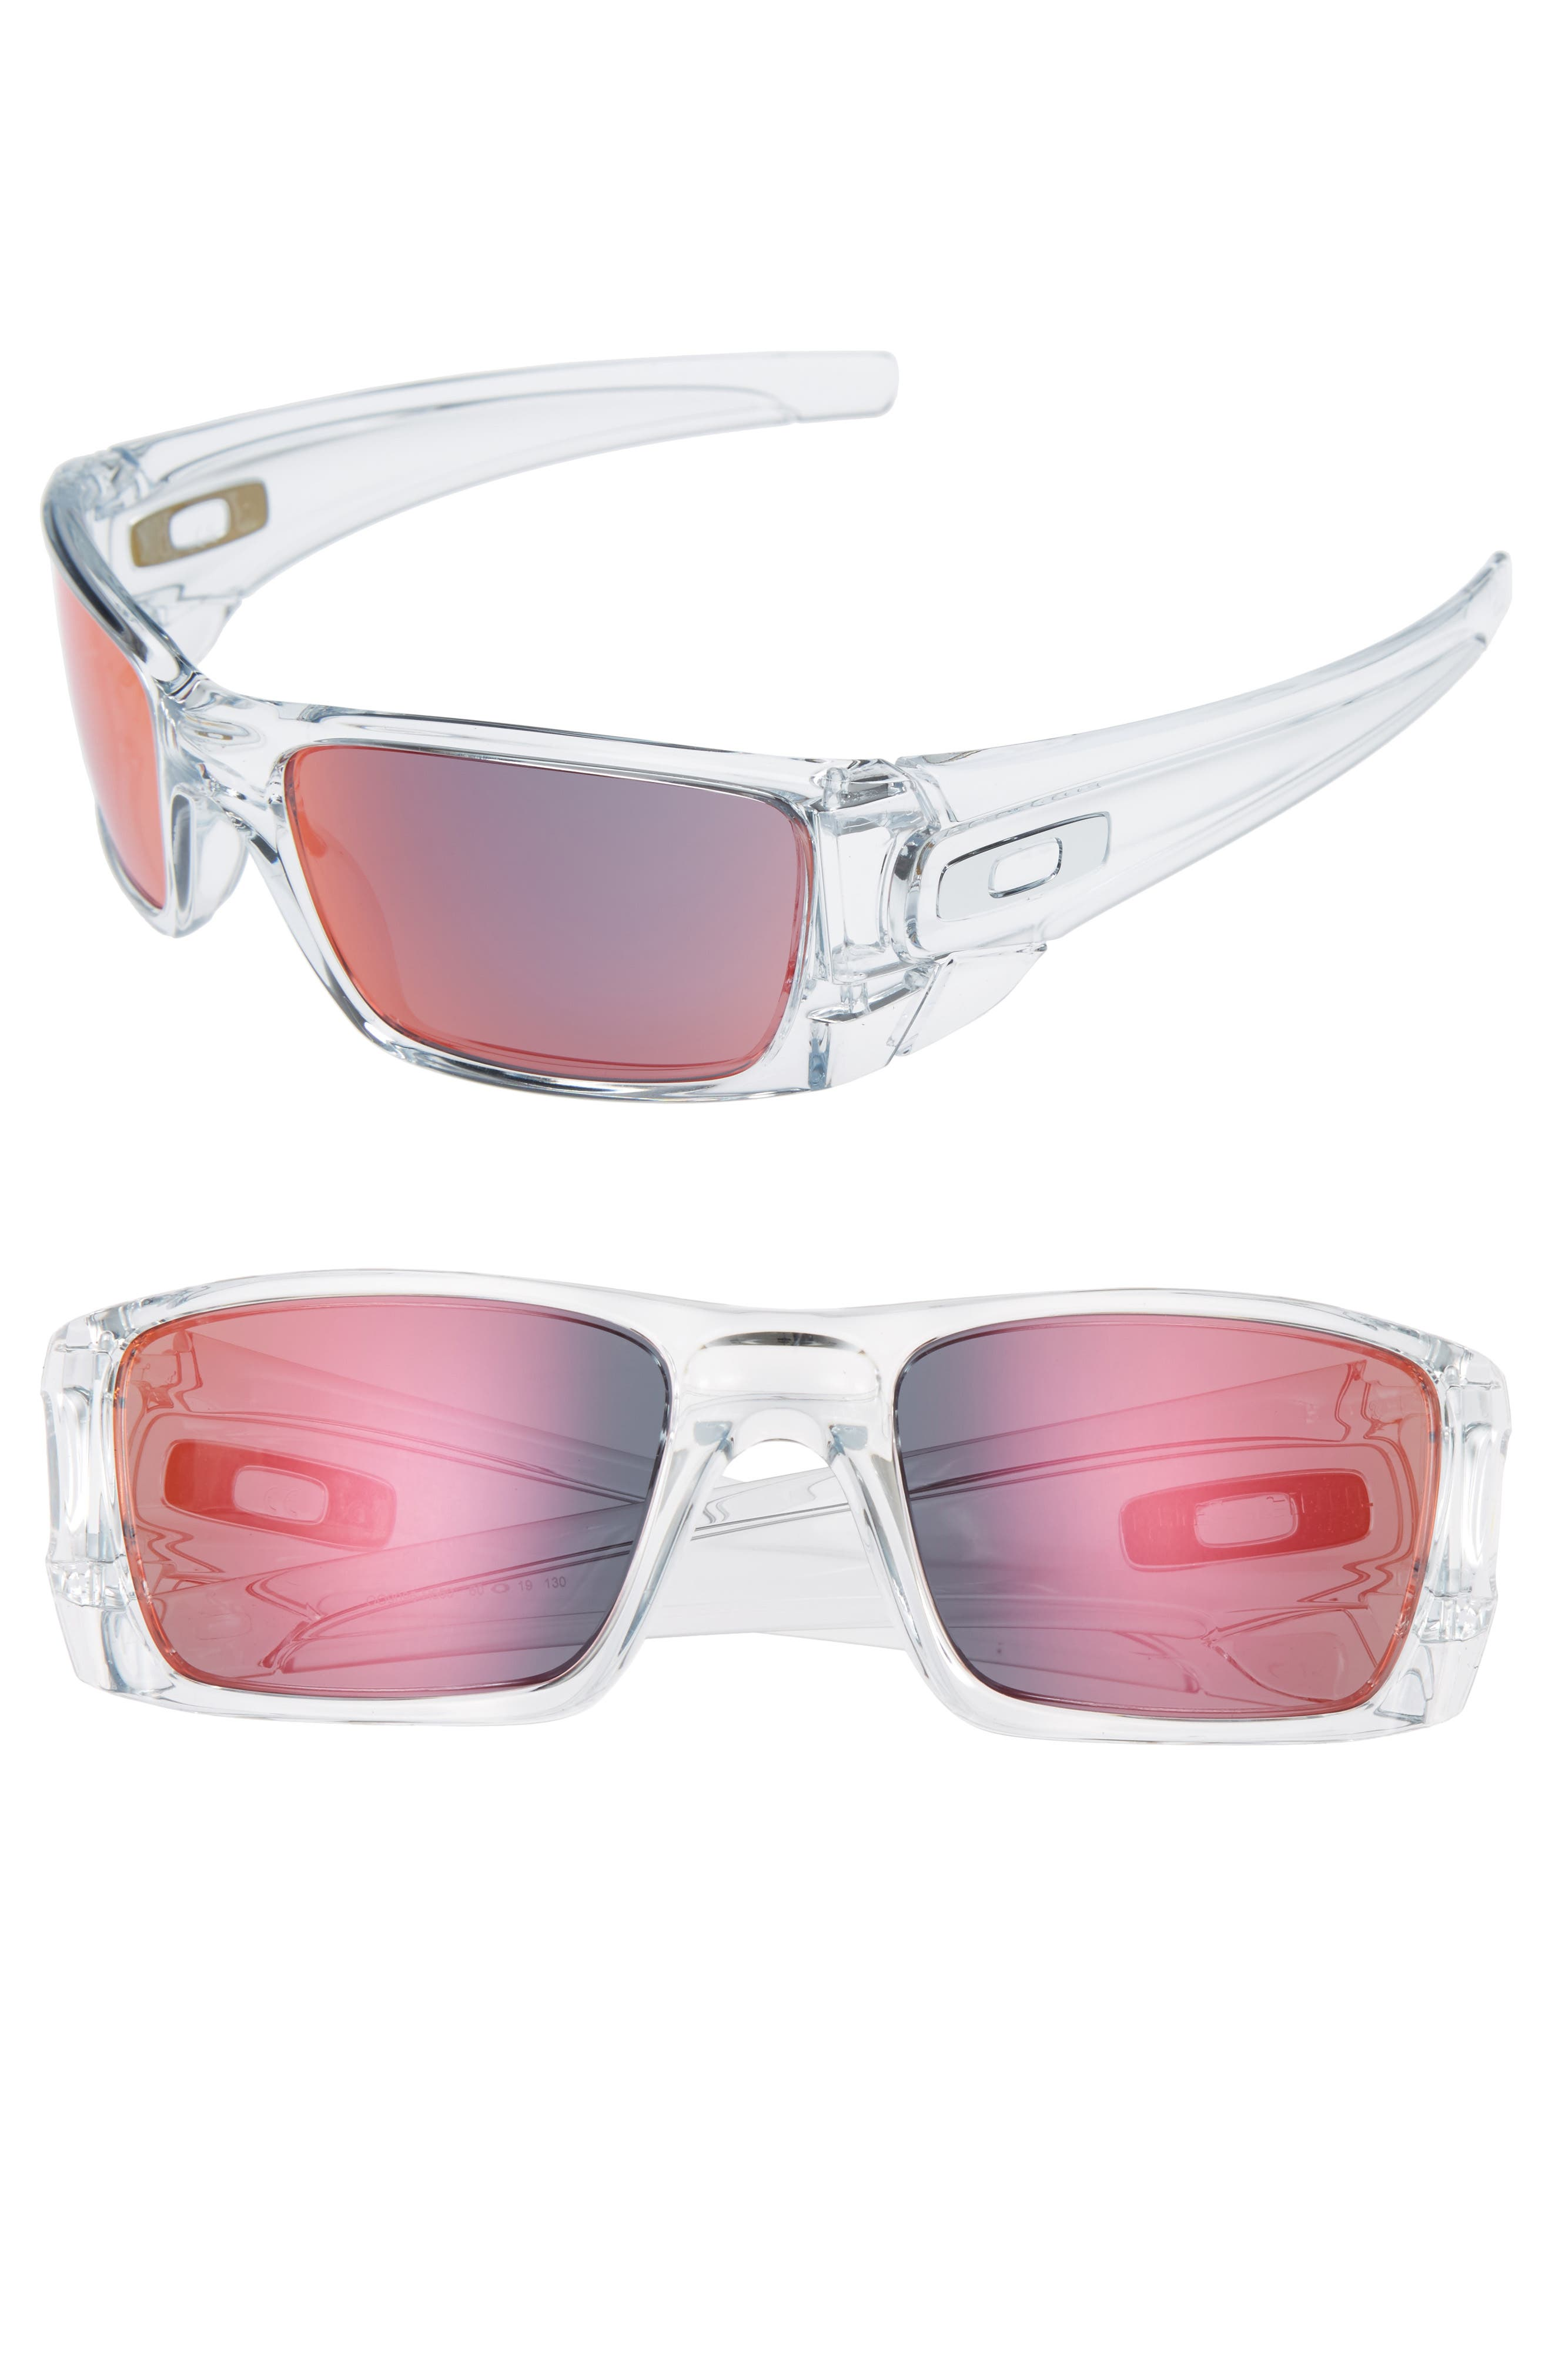 Fuel Cell 60mm Sunglasses,                         Main,                         color, Clear